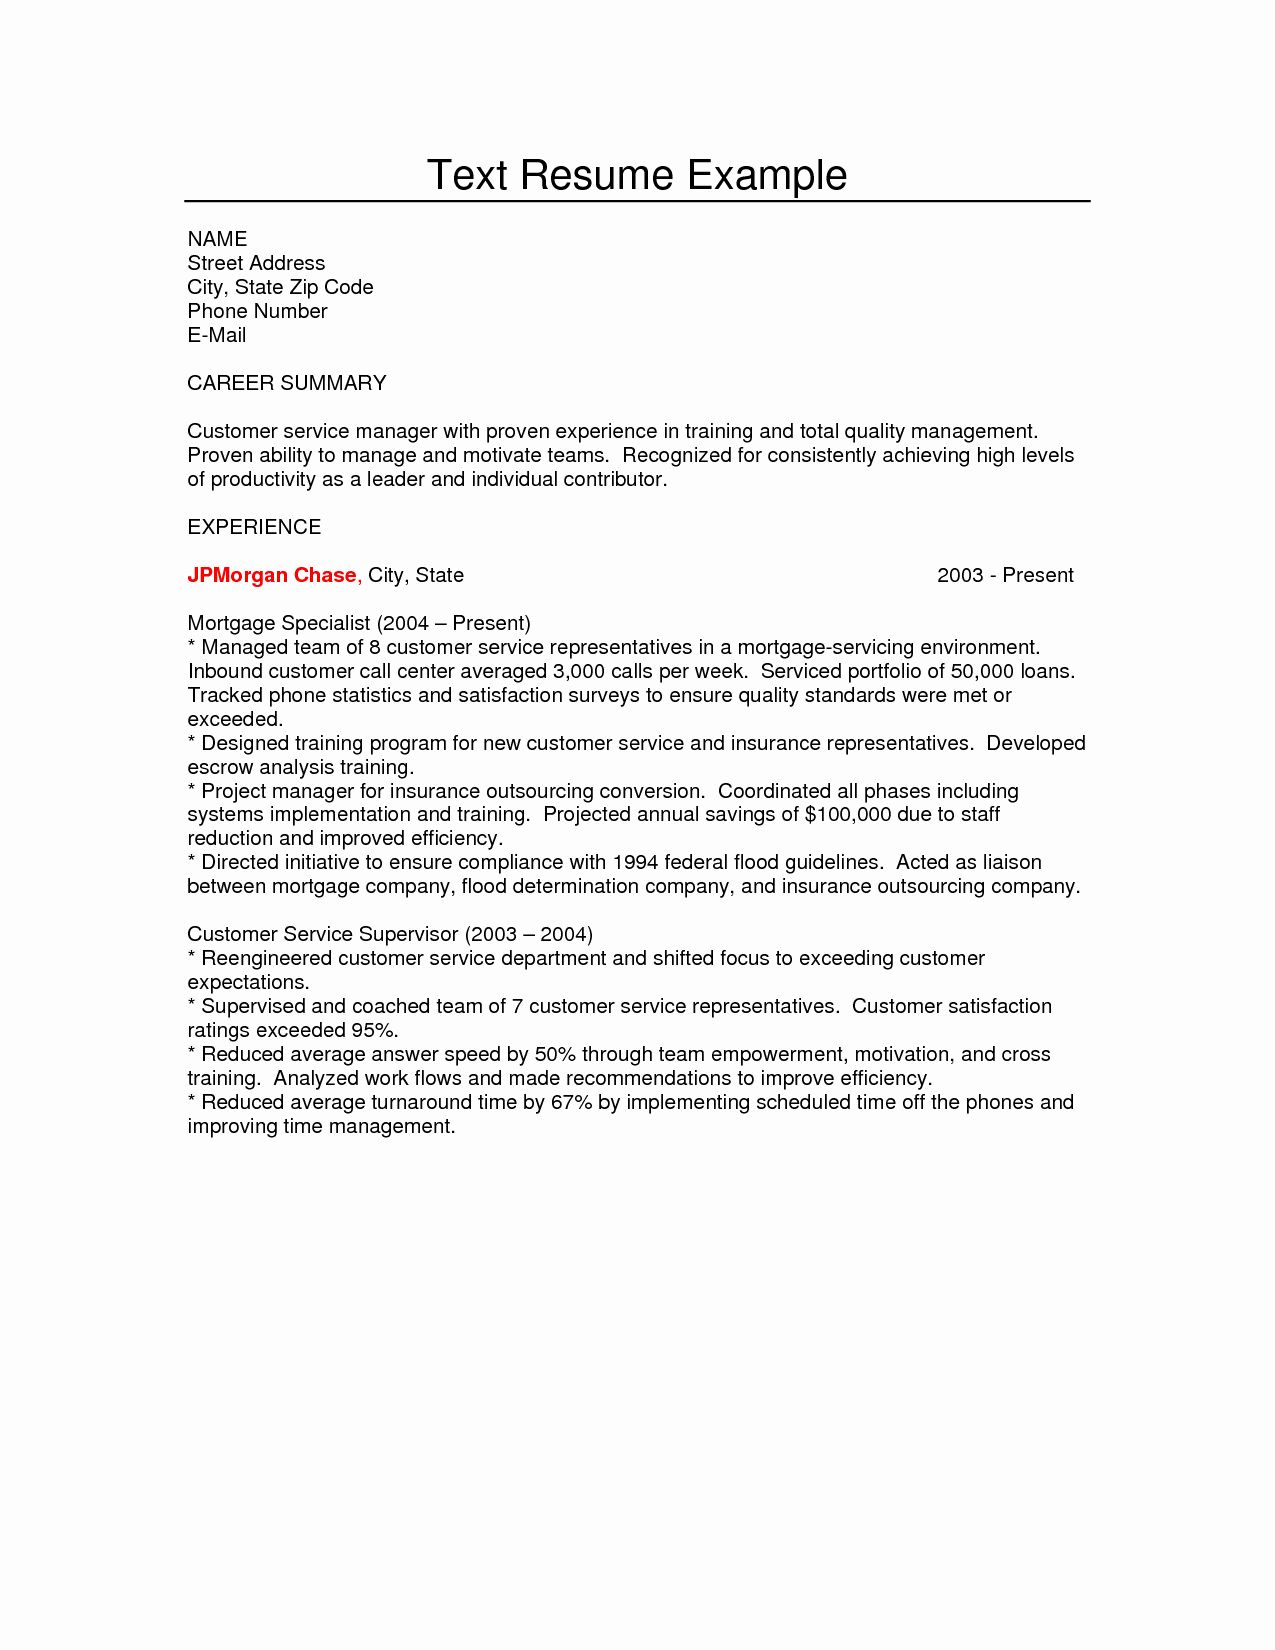 Plain Text Resume Examples New Example Of Plain Text Cover Letter Business Letter Format Resume Examples Good Resume Examples